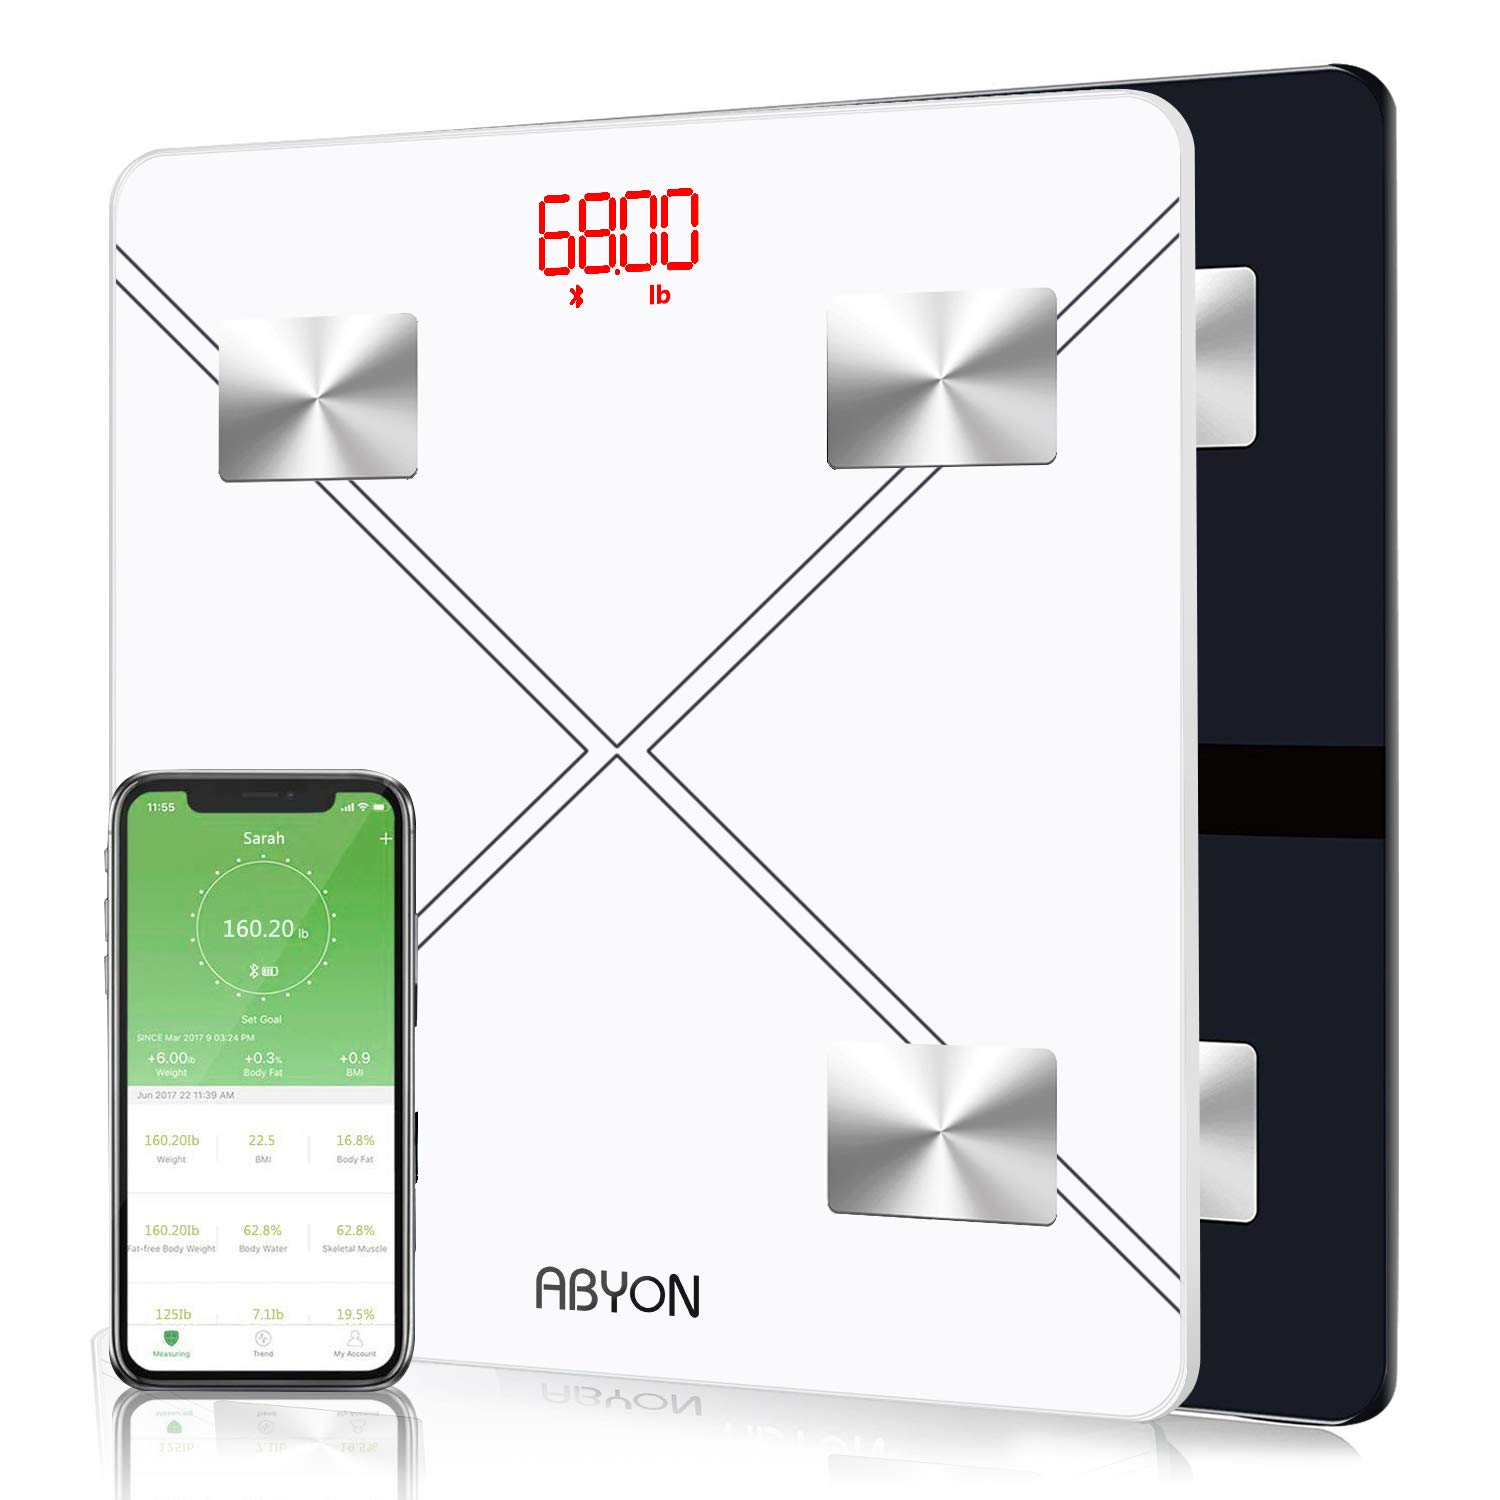 (2 PCS) Bluetooth Smart Scales Digital Weight and Body Fat Scale - Body Composition Analyzer with Smartphone APP Perfect for Your Fitness Journey,400 lbs